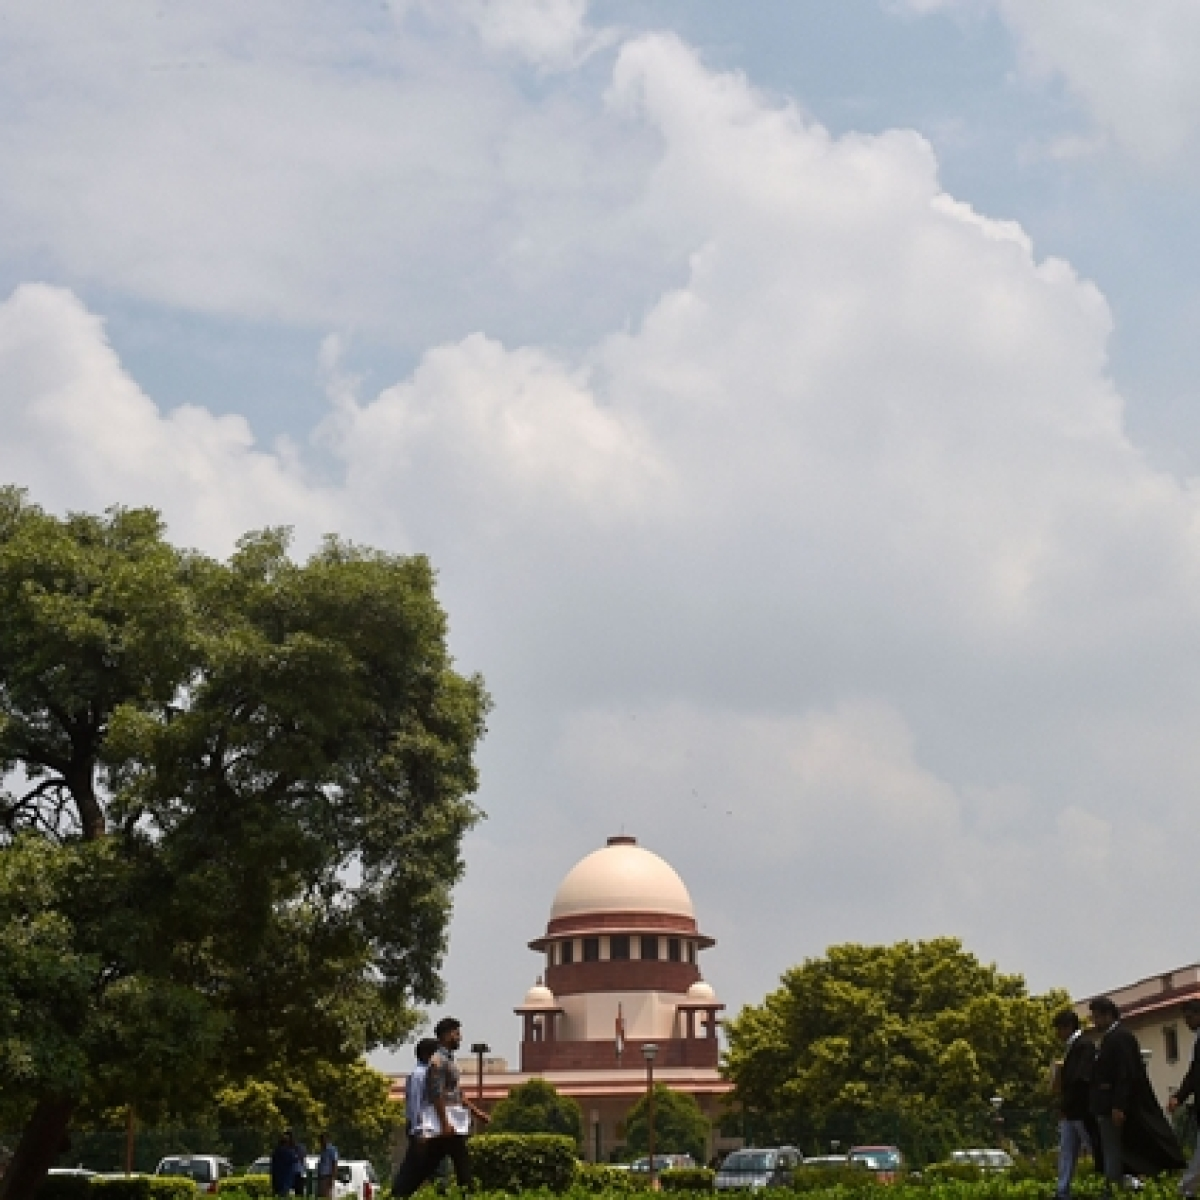 SC speaks with Shahjahanpur girl, orders Delhi police to bring her parents